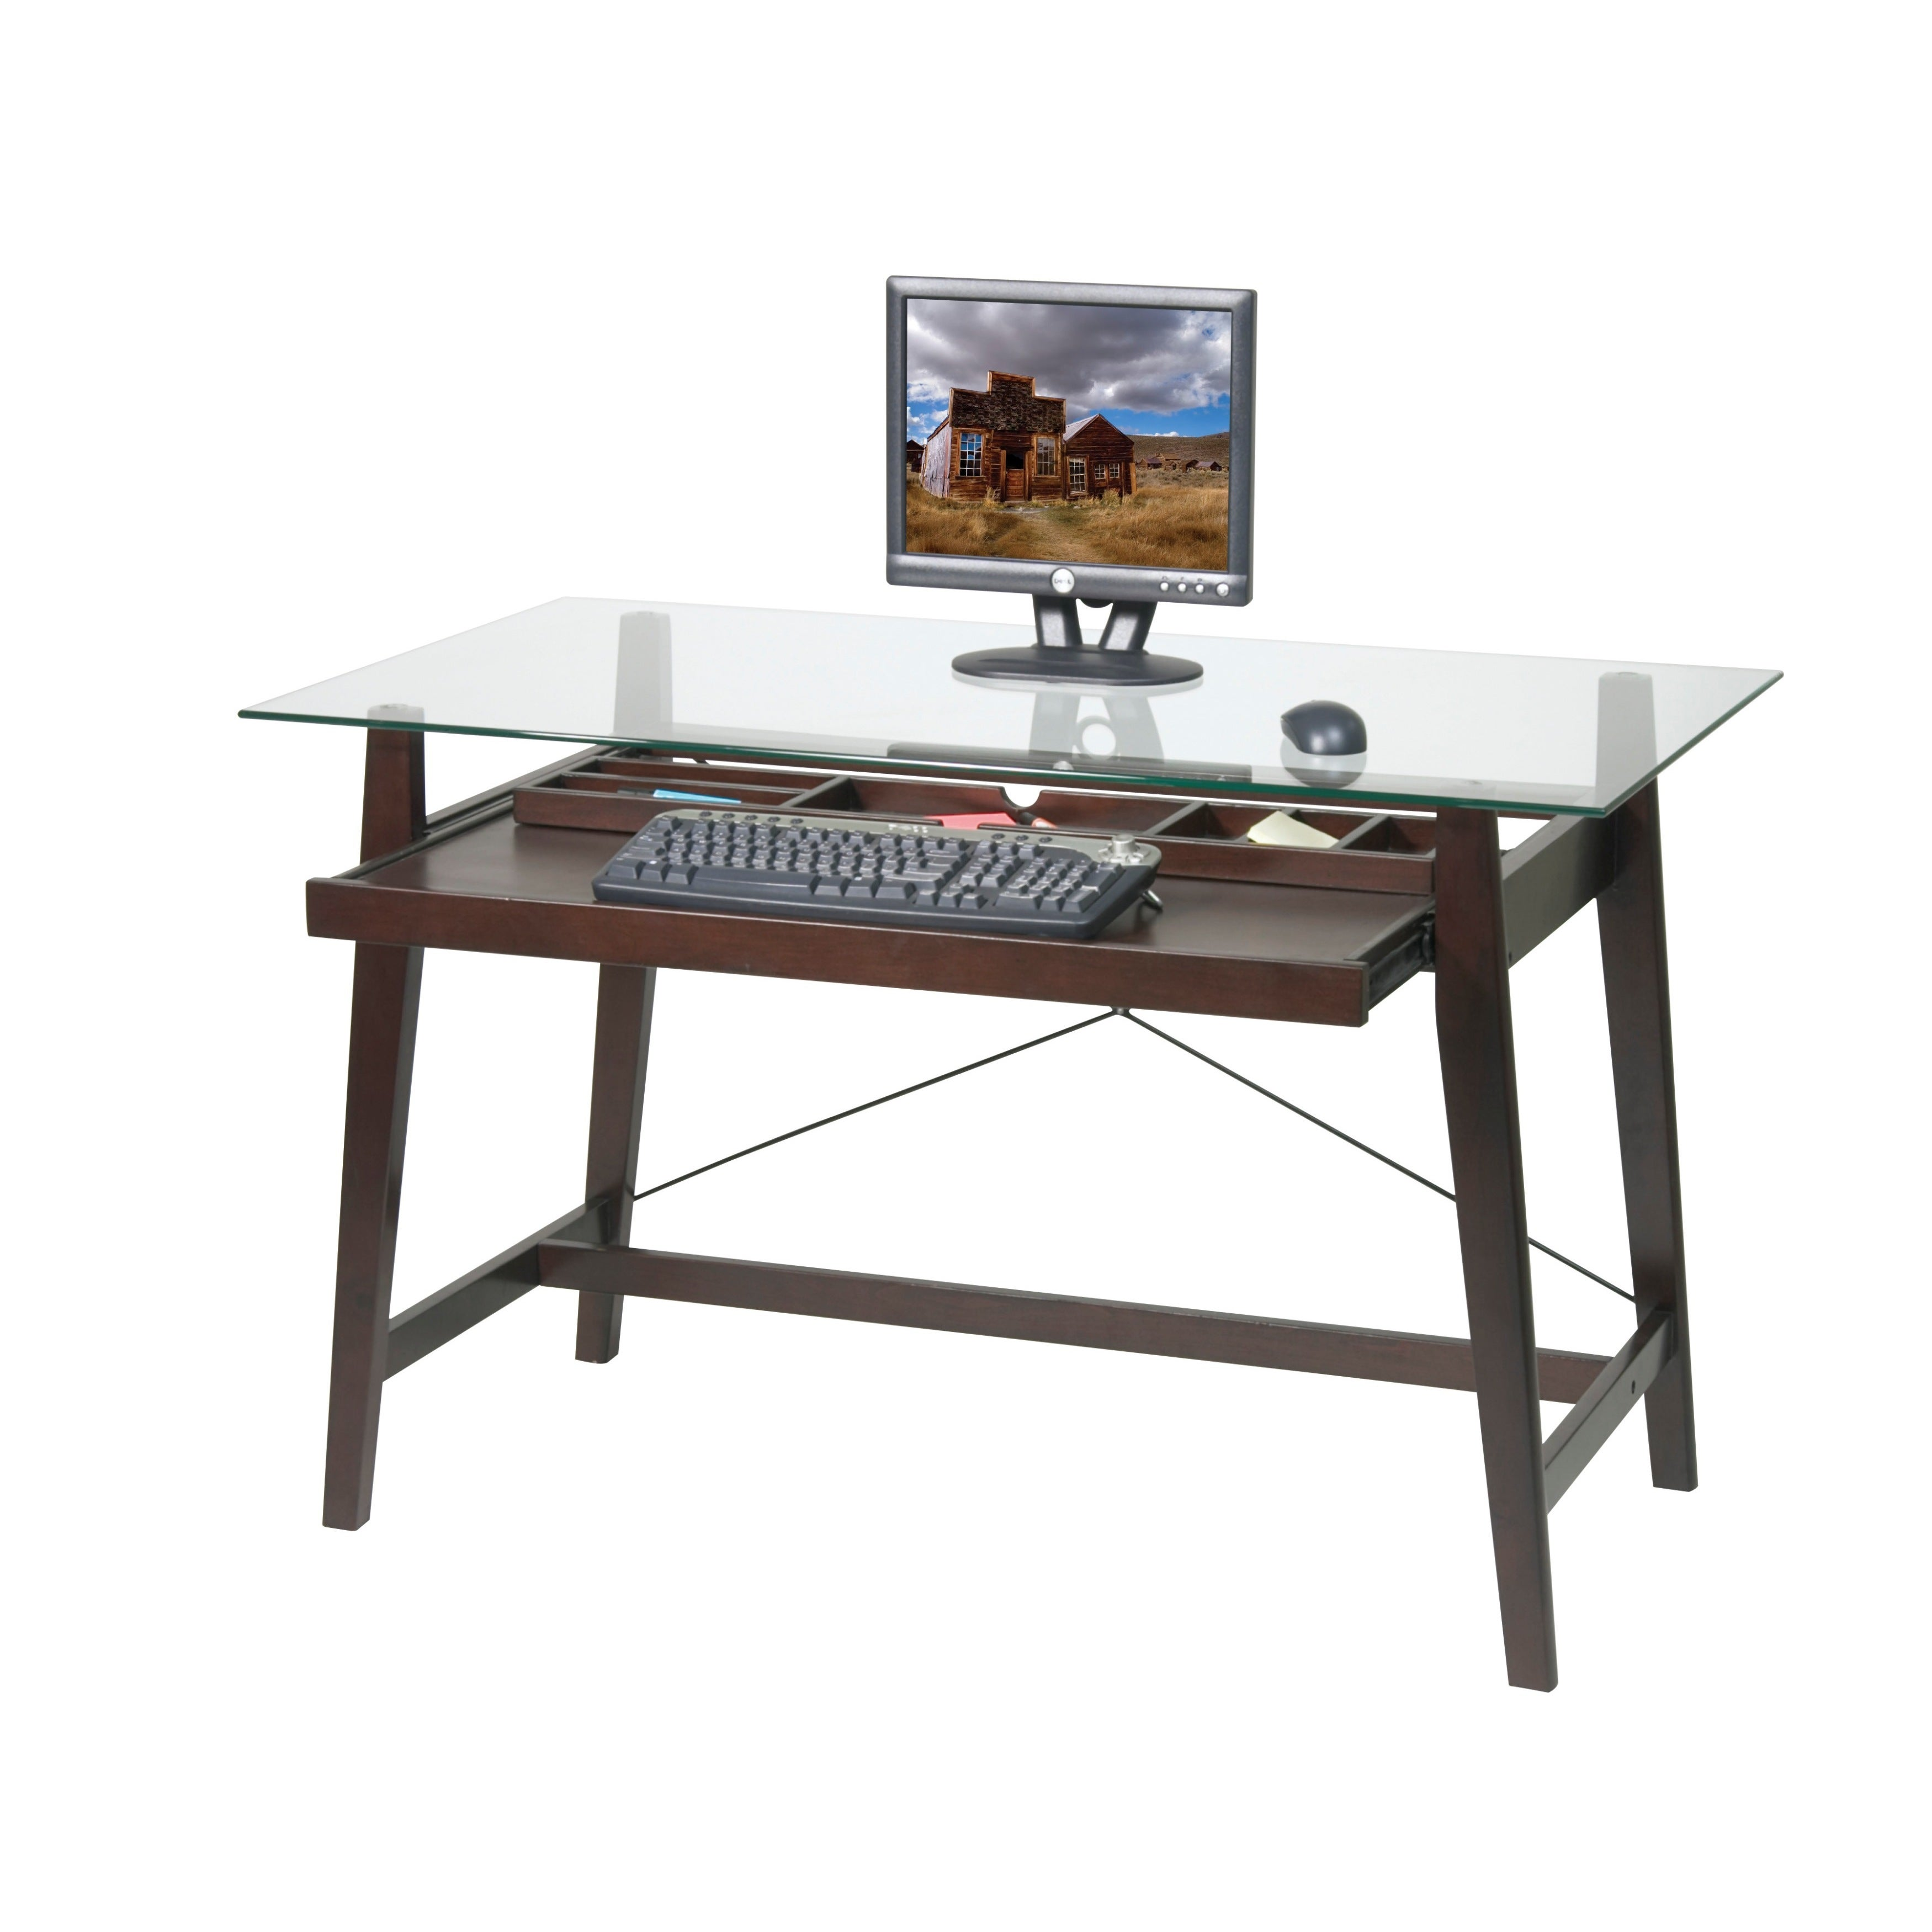 study amazon co gaming desktop kitchen office uk desk foldable home computer dp tables folding furniture laptop westwood fh black table pc workstation